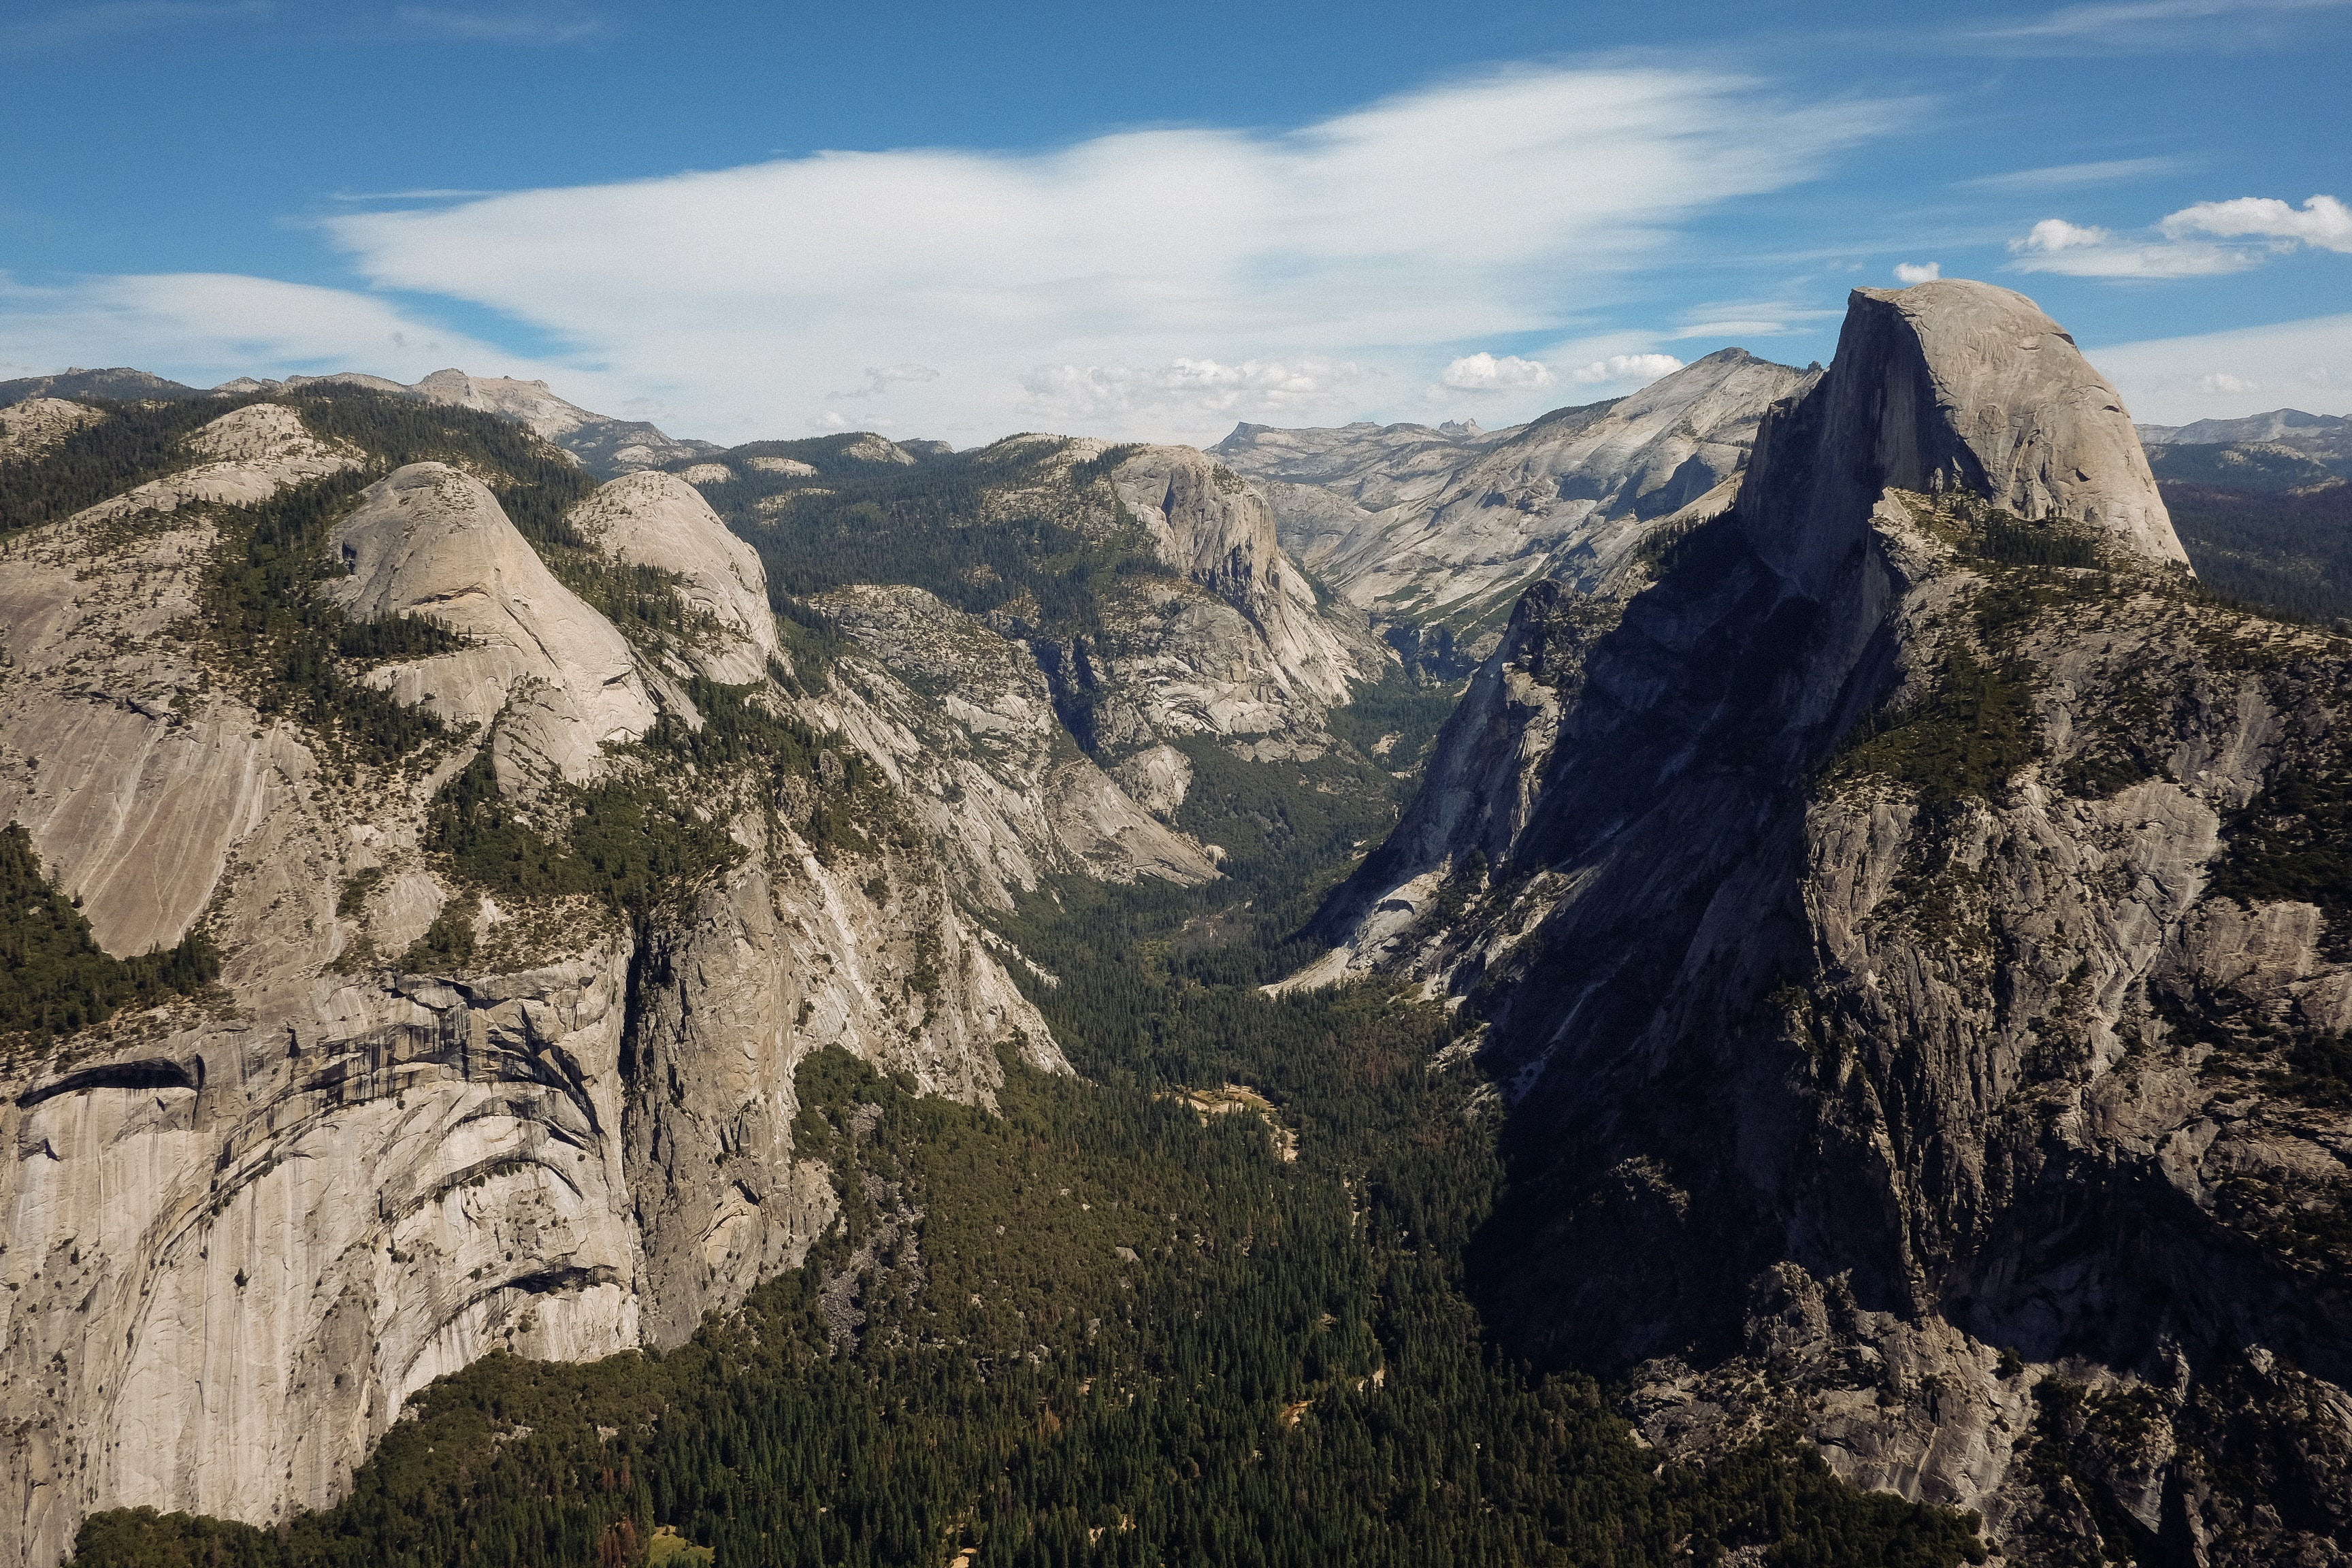 A high view of rock faces in the Yosemite Valley